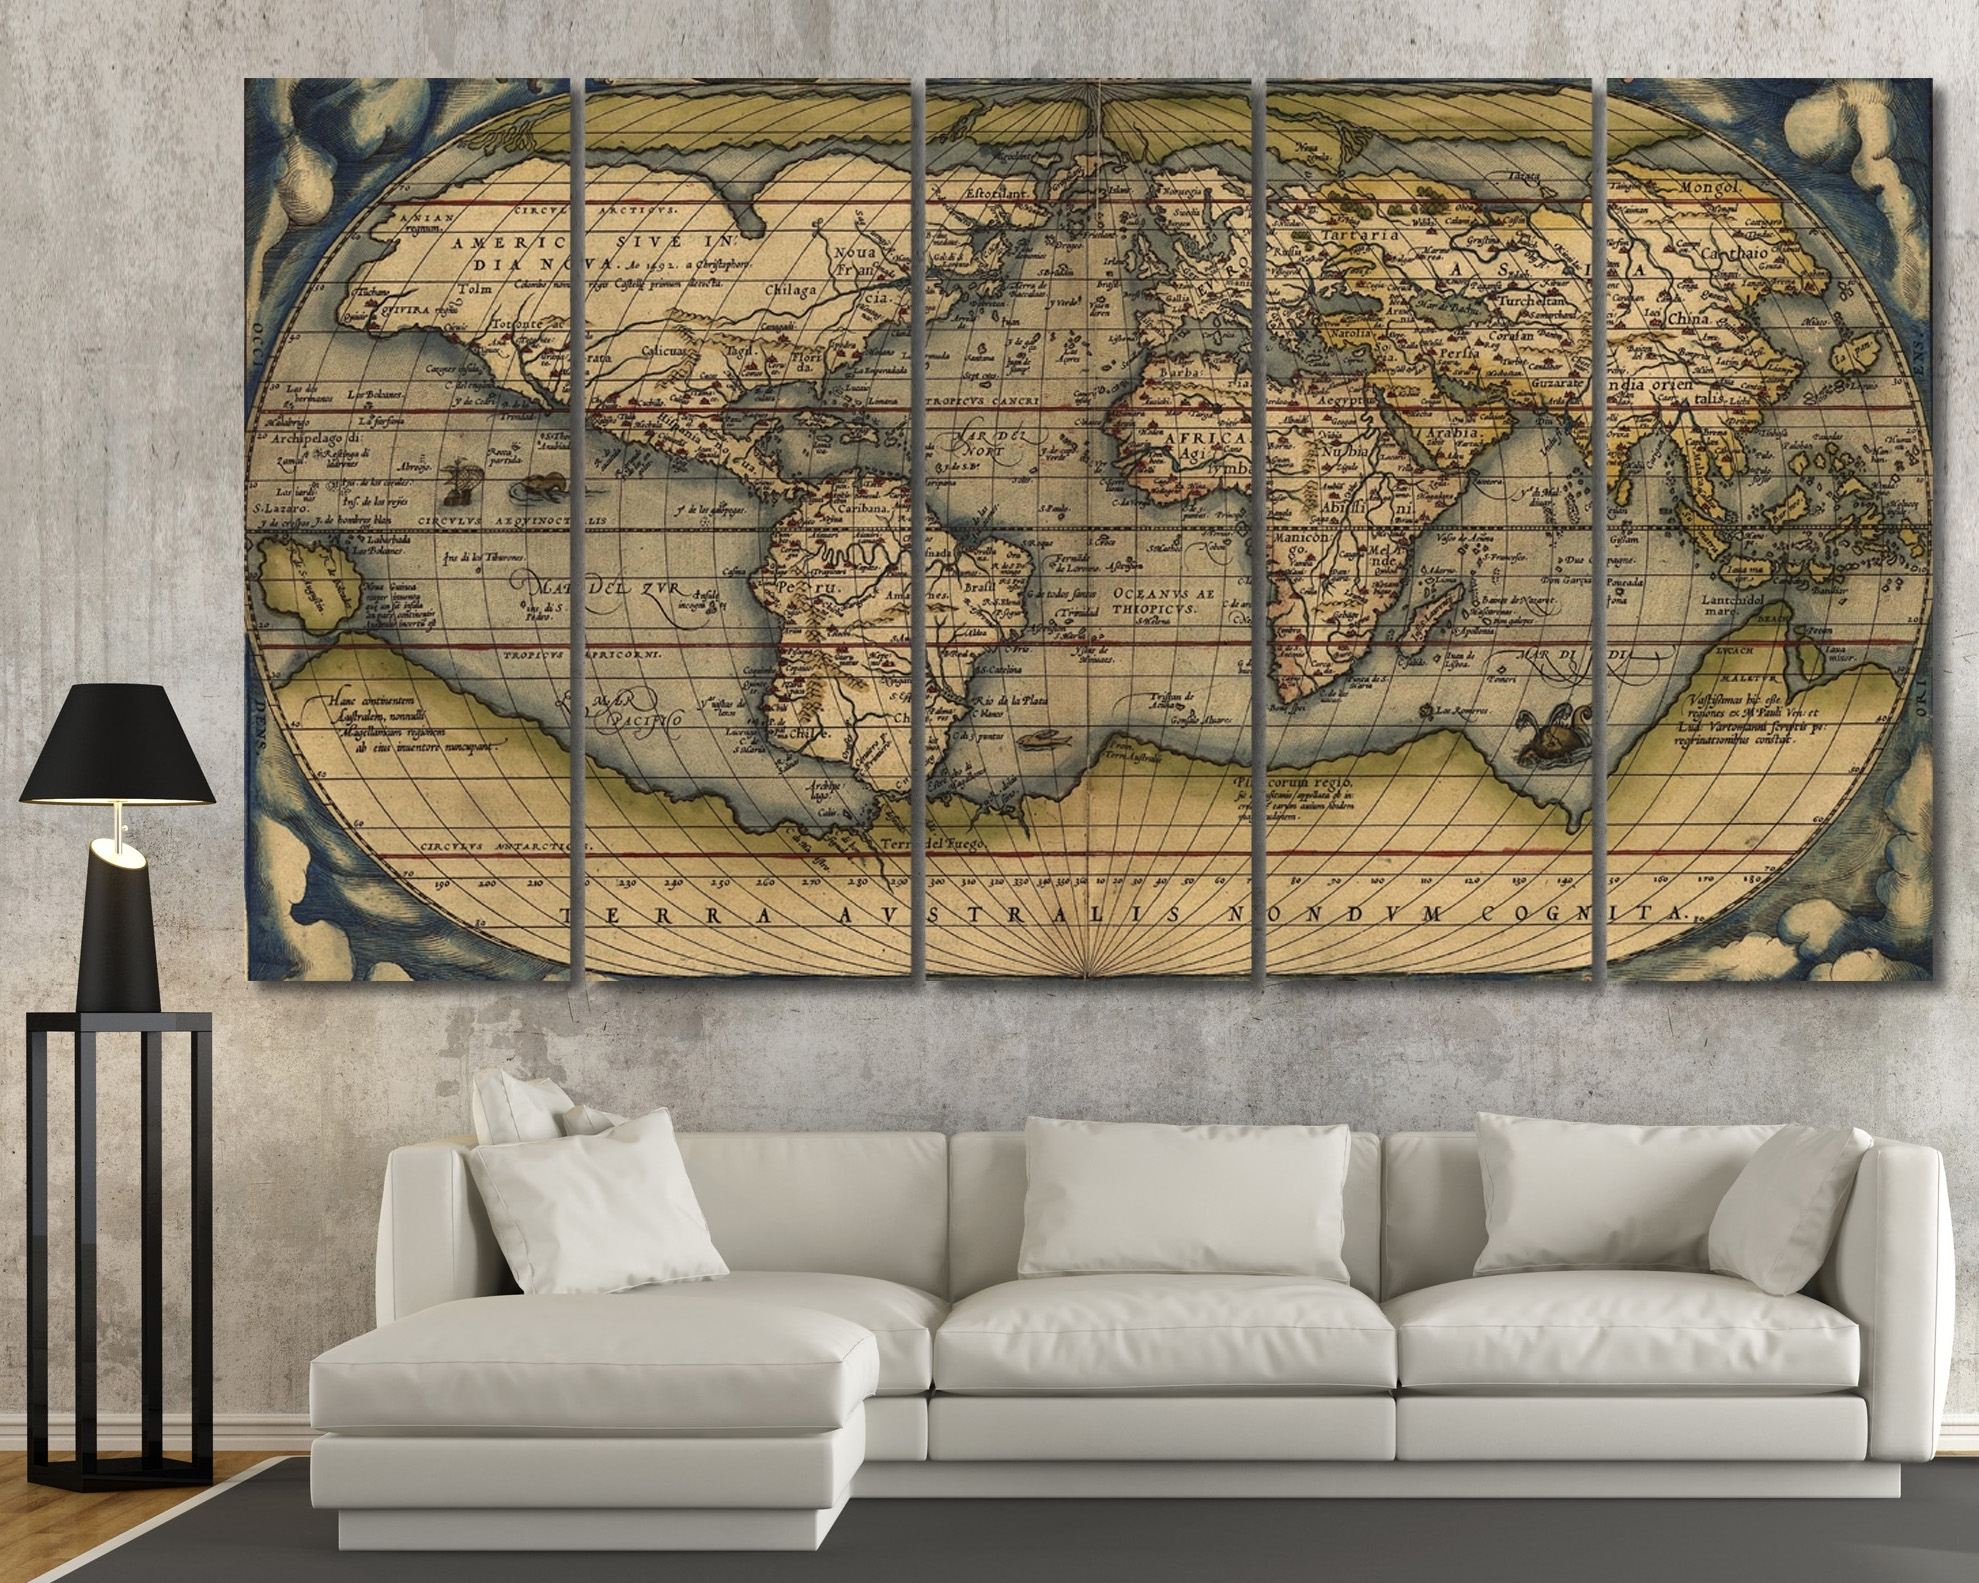 Large Vintage Wall Art Old World Map At Texelprintart Intended For Current Maps Canvas Wall Art (View 4 of 15)